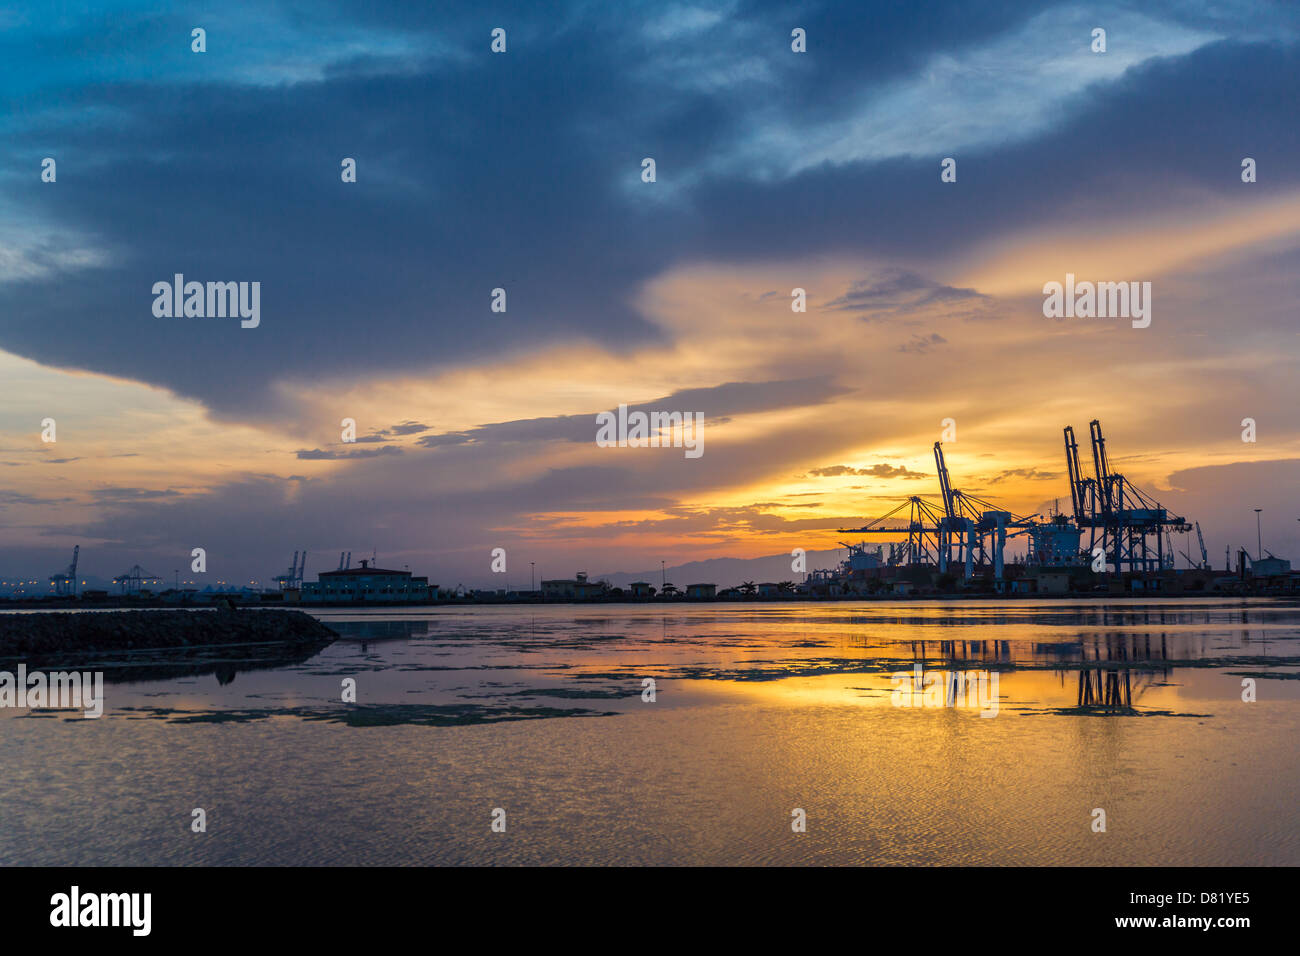 A beautiful sunset over the port of Djibouti on the Red sea - Stock Image